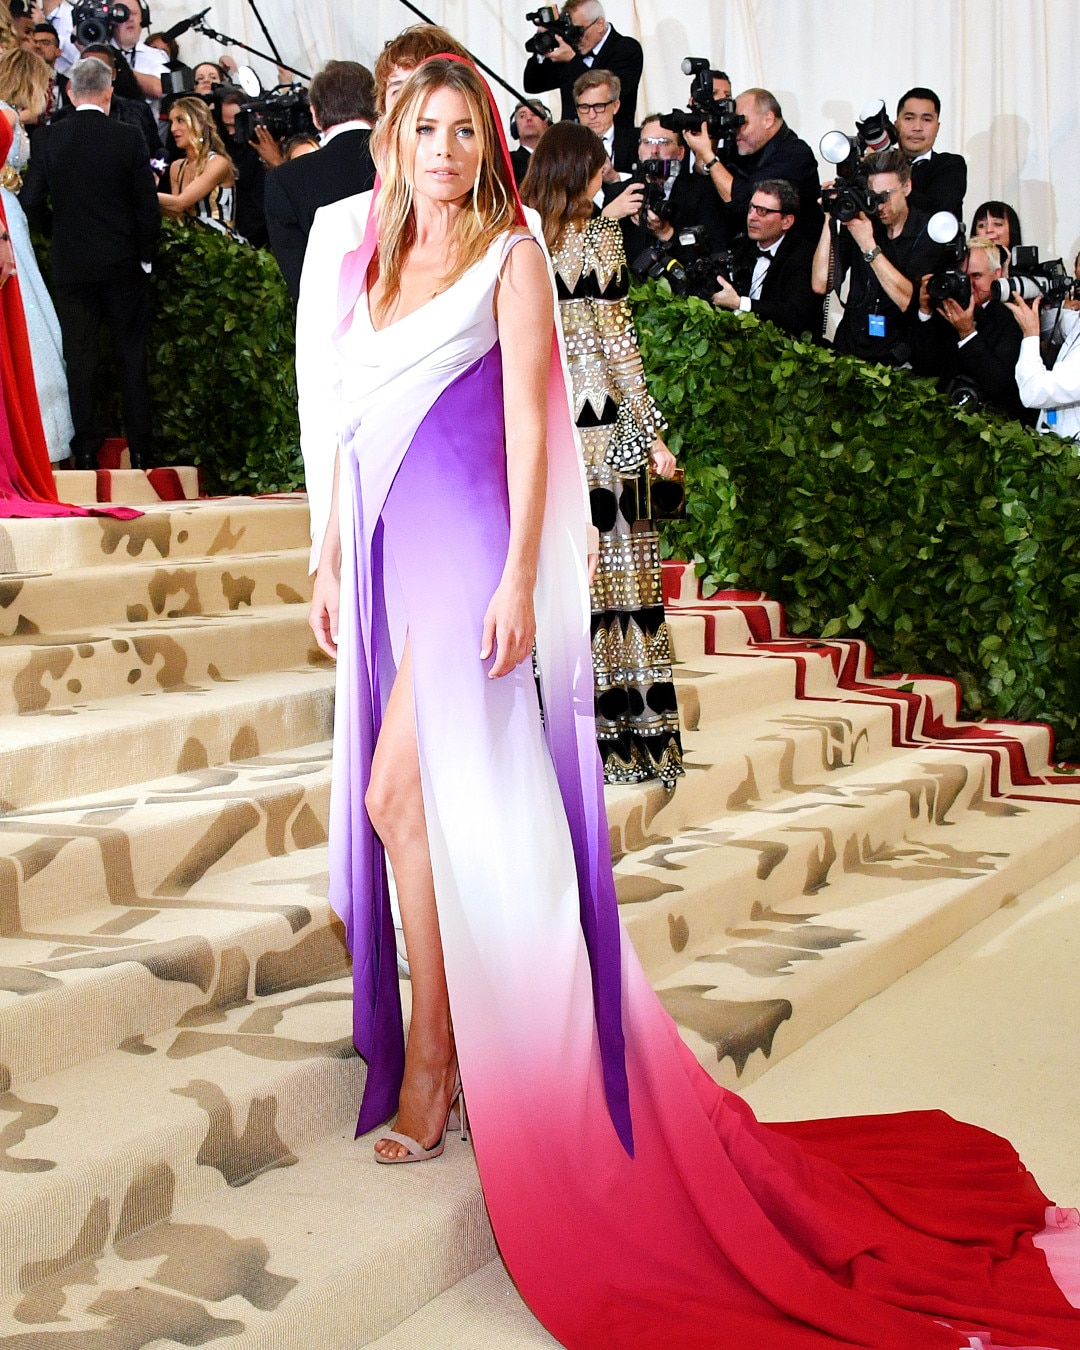 Red style carpet met gala event new photo